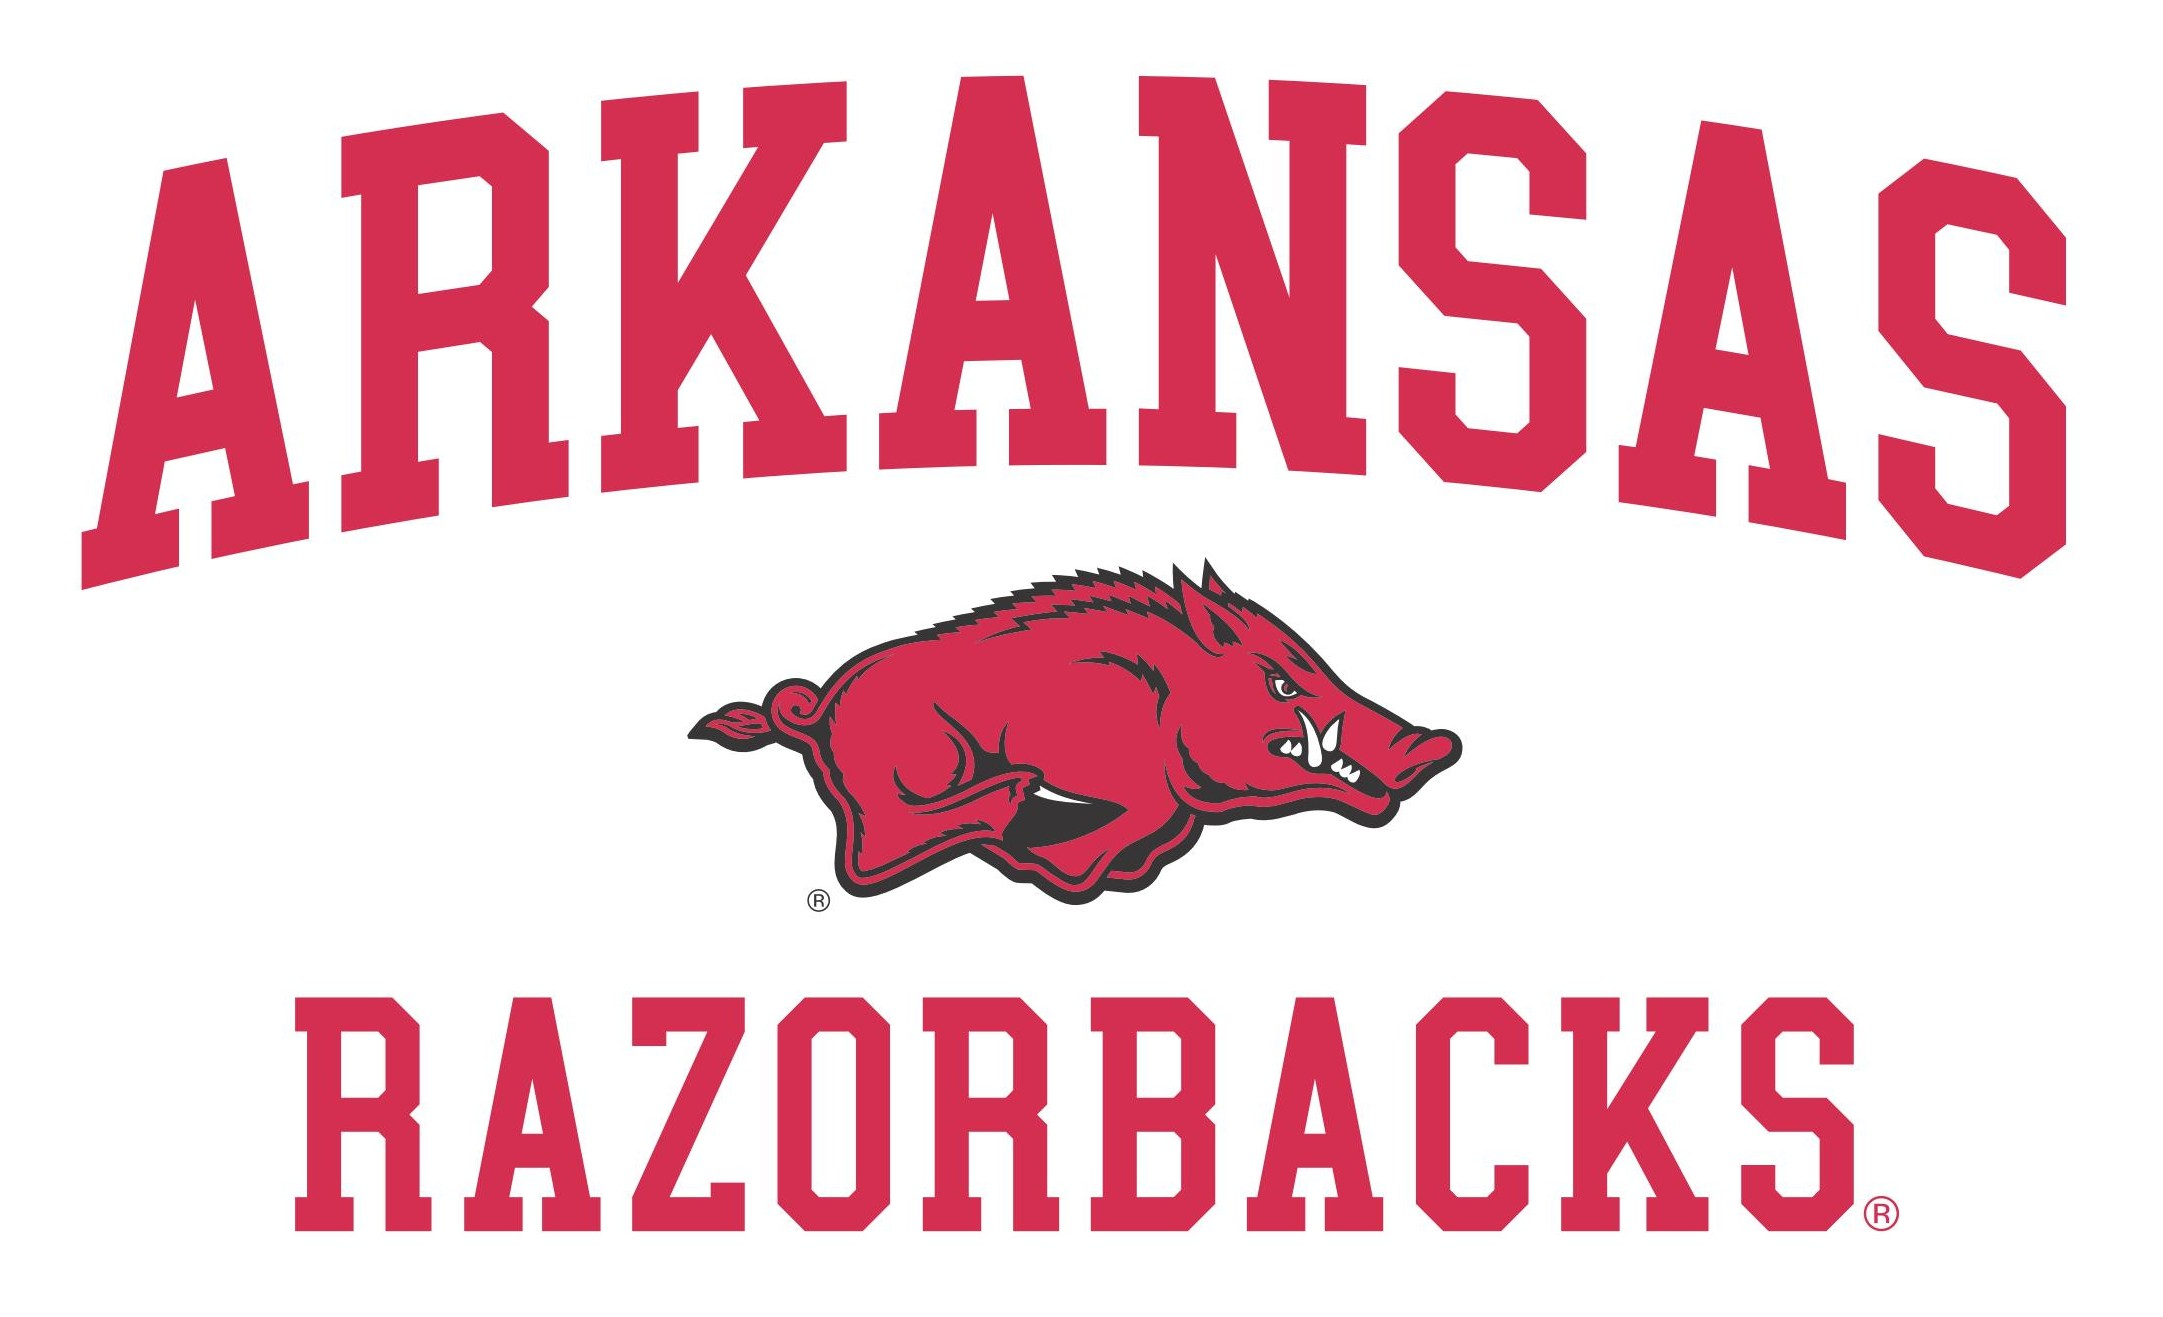 Arkansas Razorbacks Tickets